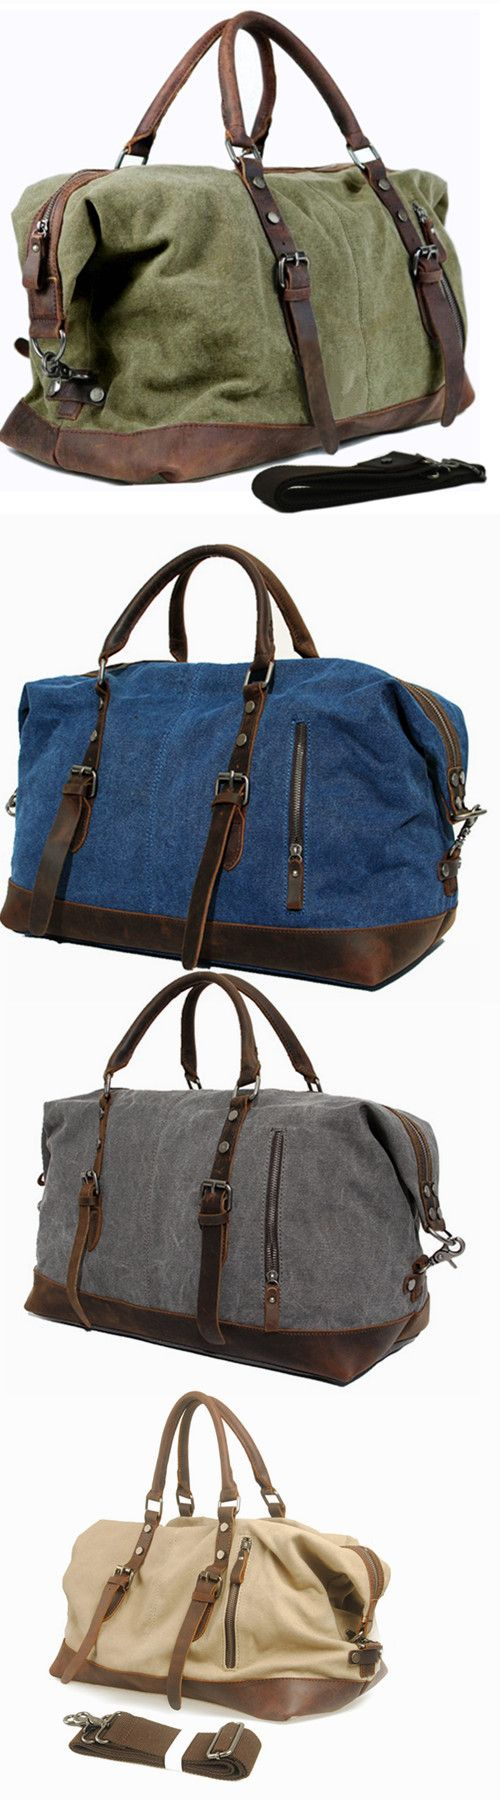 Vintage military Canvas Leather men travel bags Carry on Luggage bags Men  Duffel bags travel tote c5e5df5e54ca7